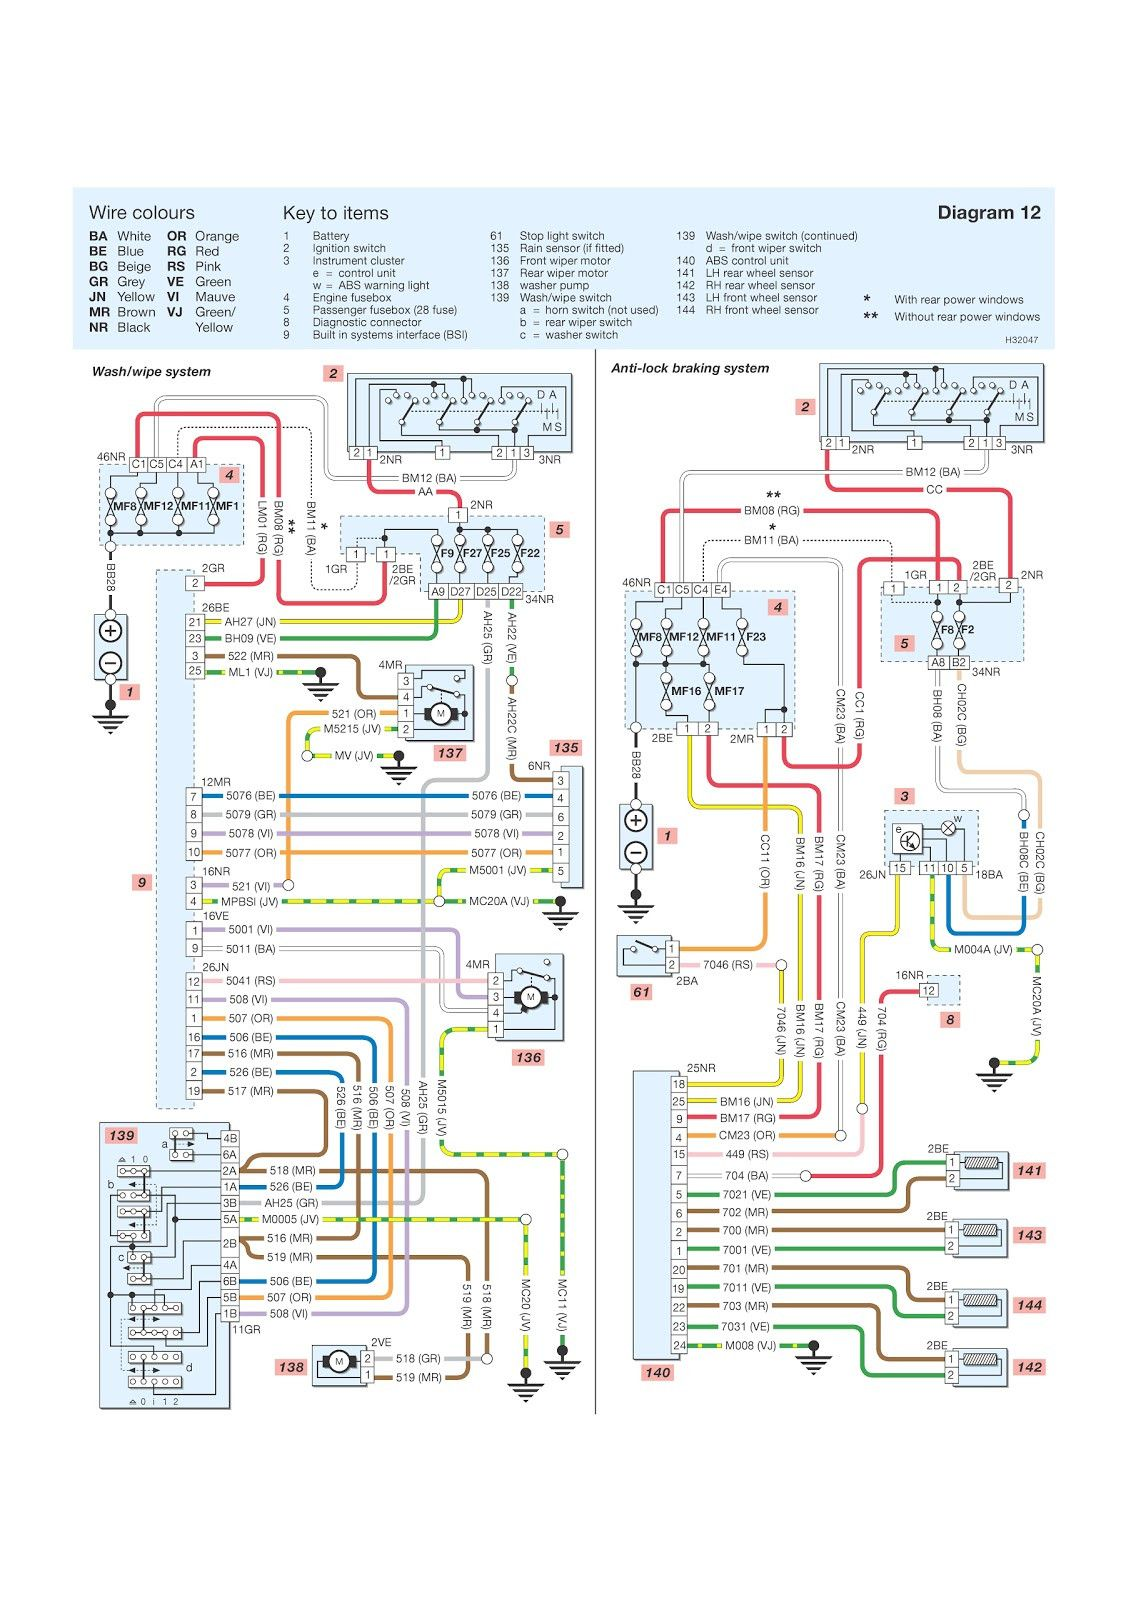 peugeot 106 wiring loom diagram wiring diagram review peugeot 106 wiring diagram pdf source fuse box  [ 1131 x 1600 Pixel ]